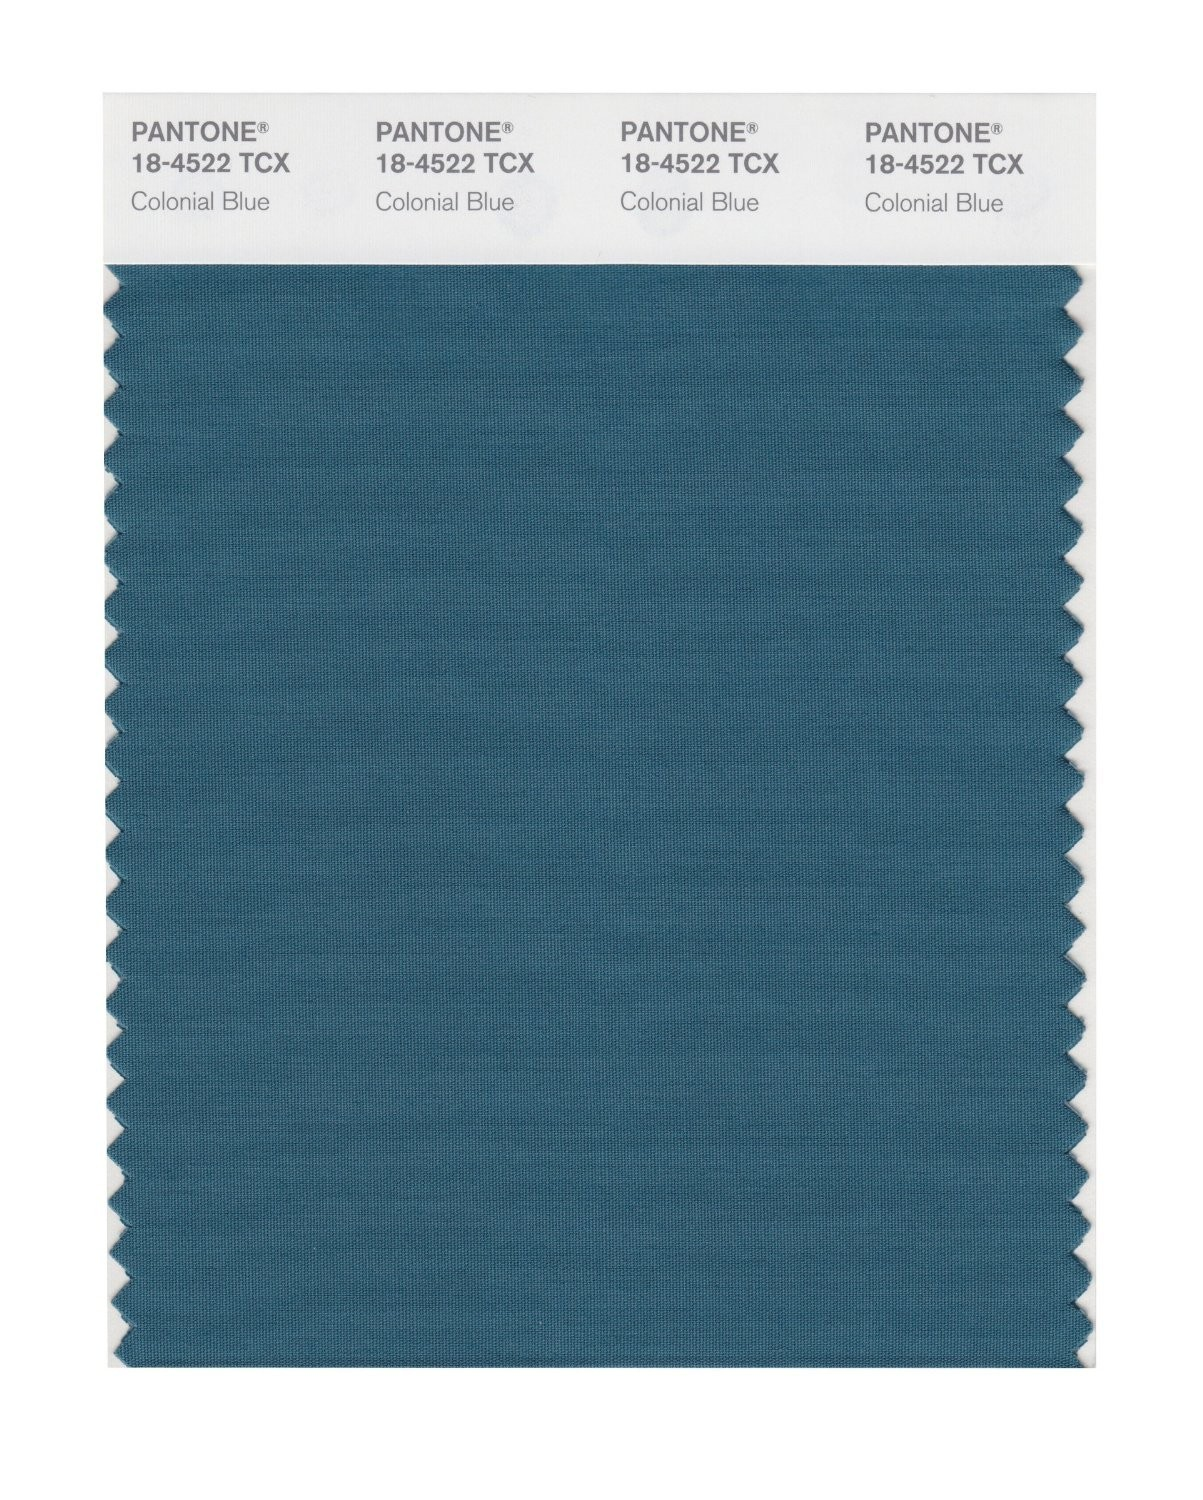 Pantone 18-4522 TCX Swatch Card Colonial Blue